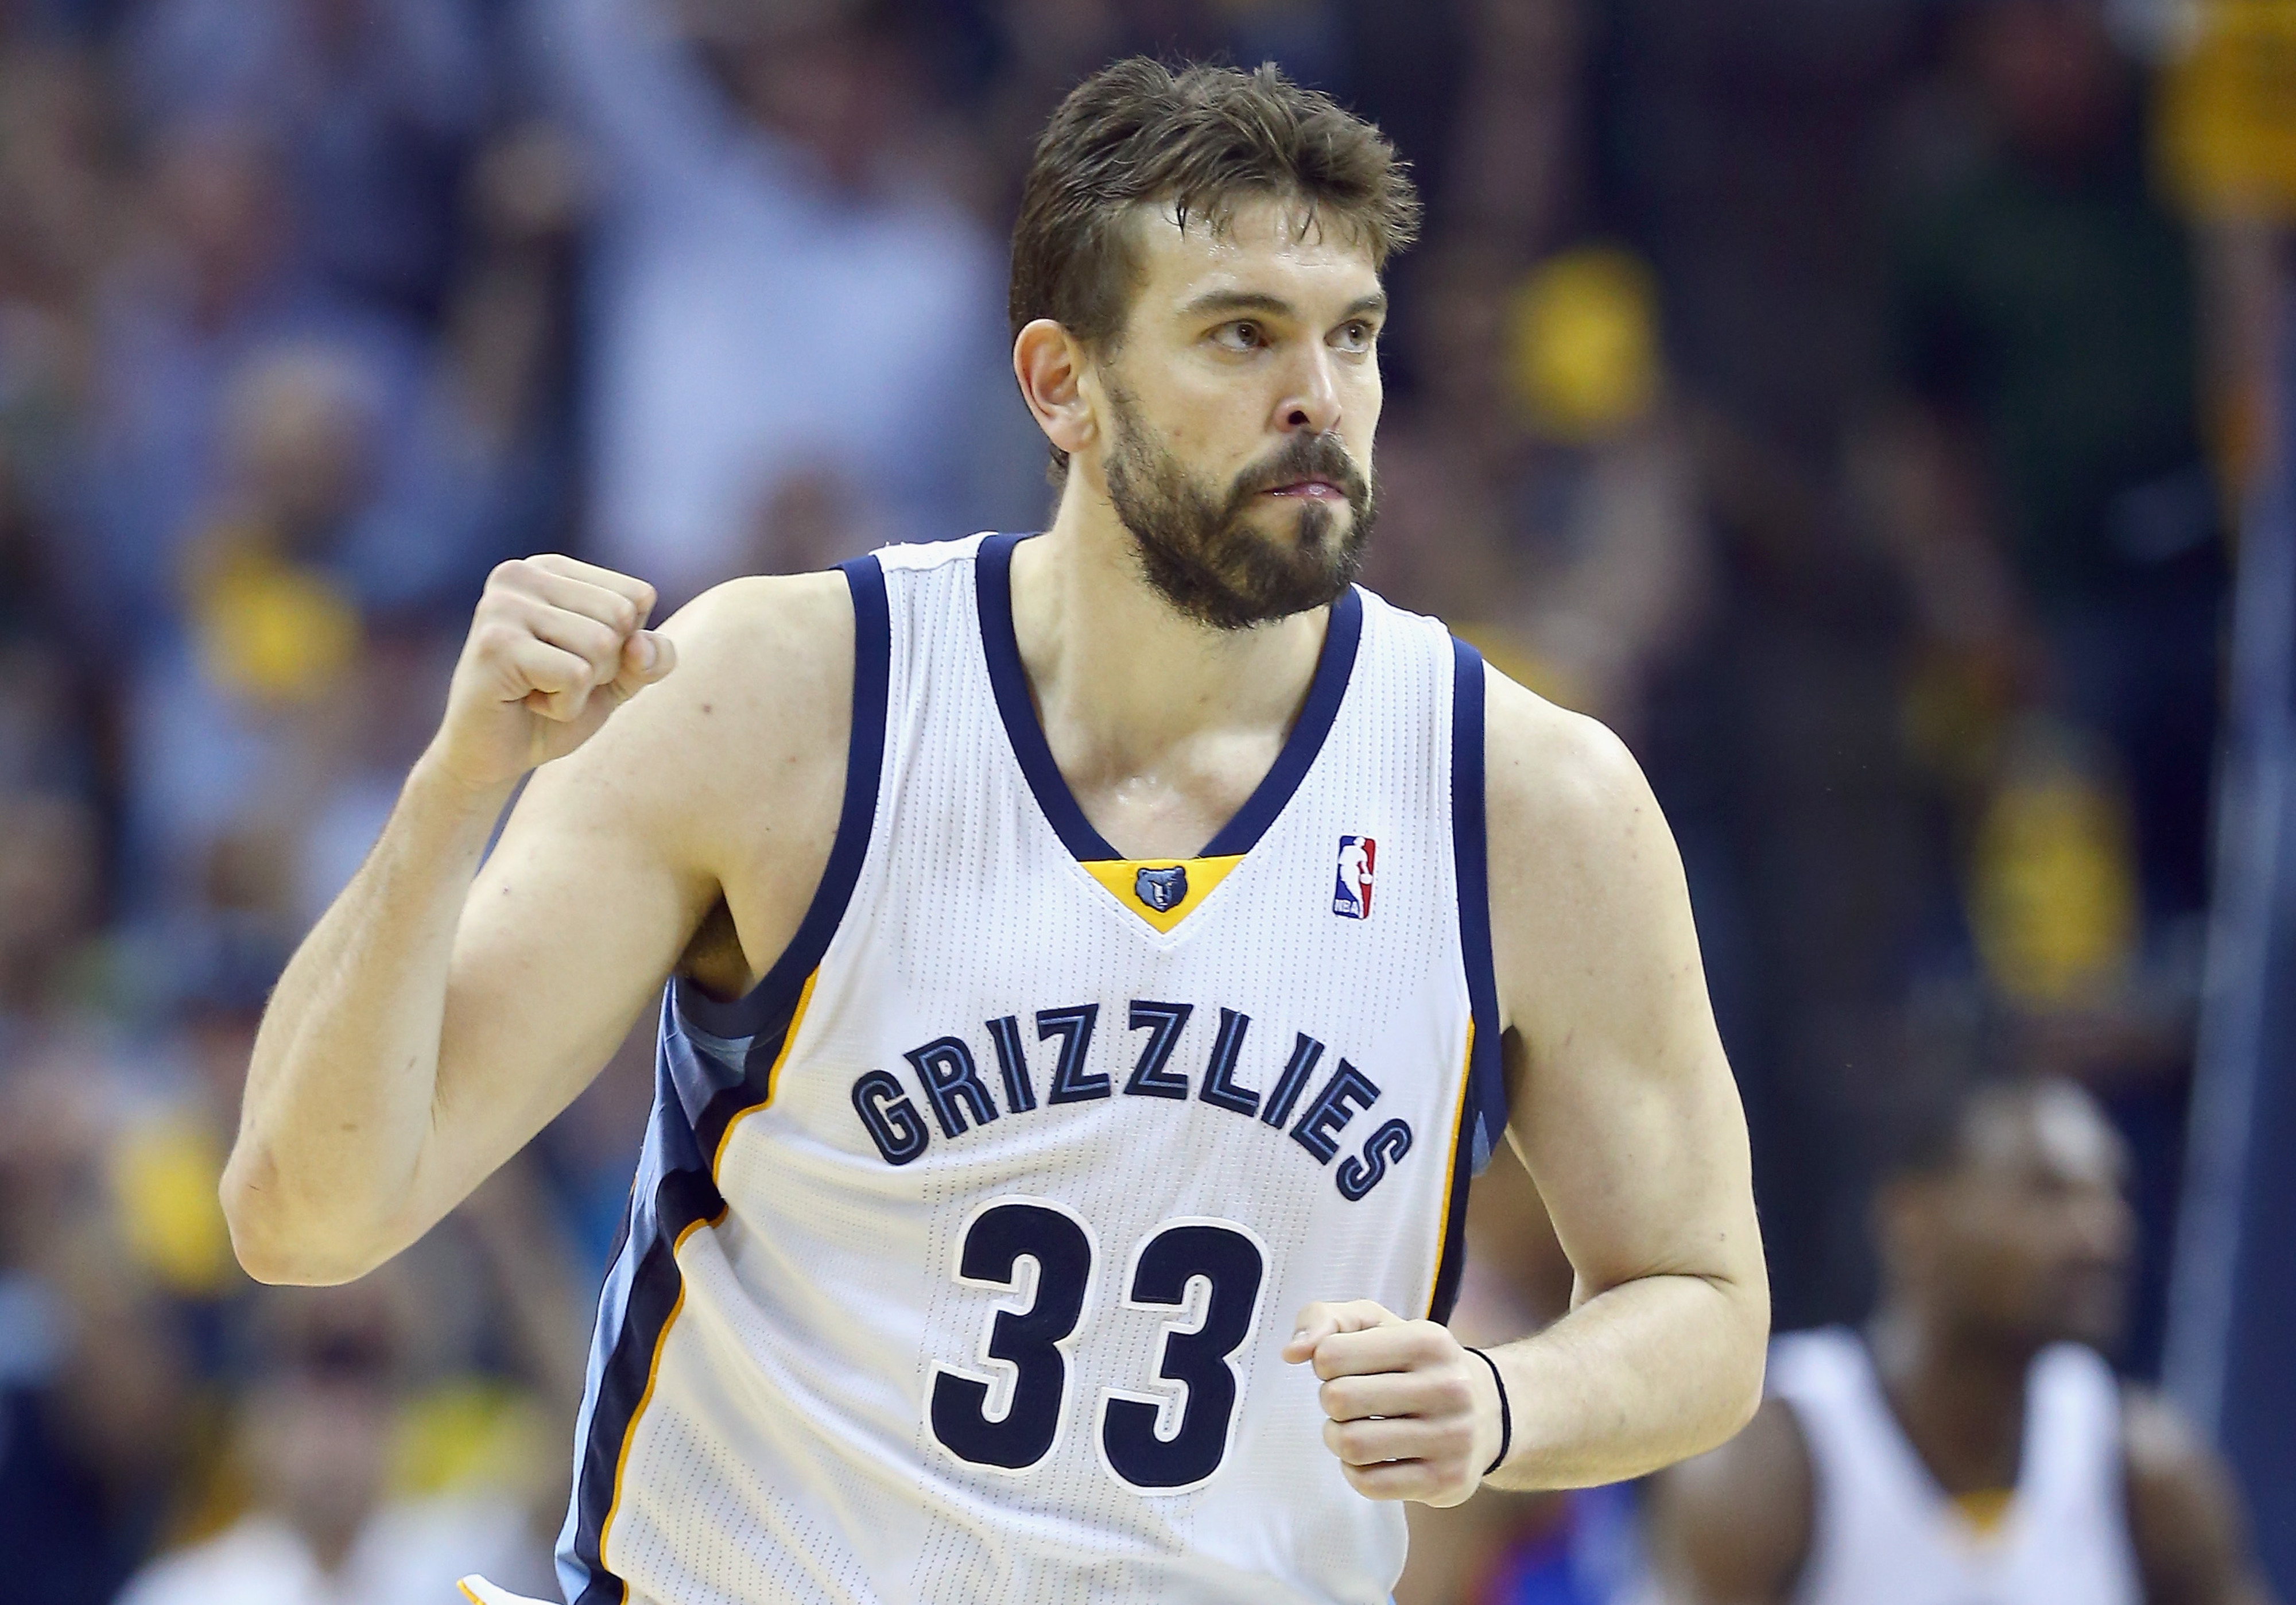 Hopefully Grizzlies fans see this more from Wendigo next season than they did during the 2013-2014 campaign.